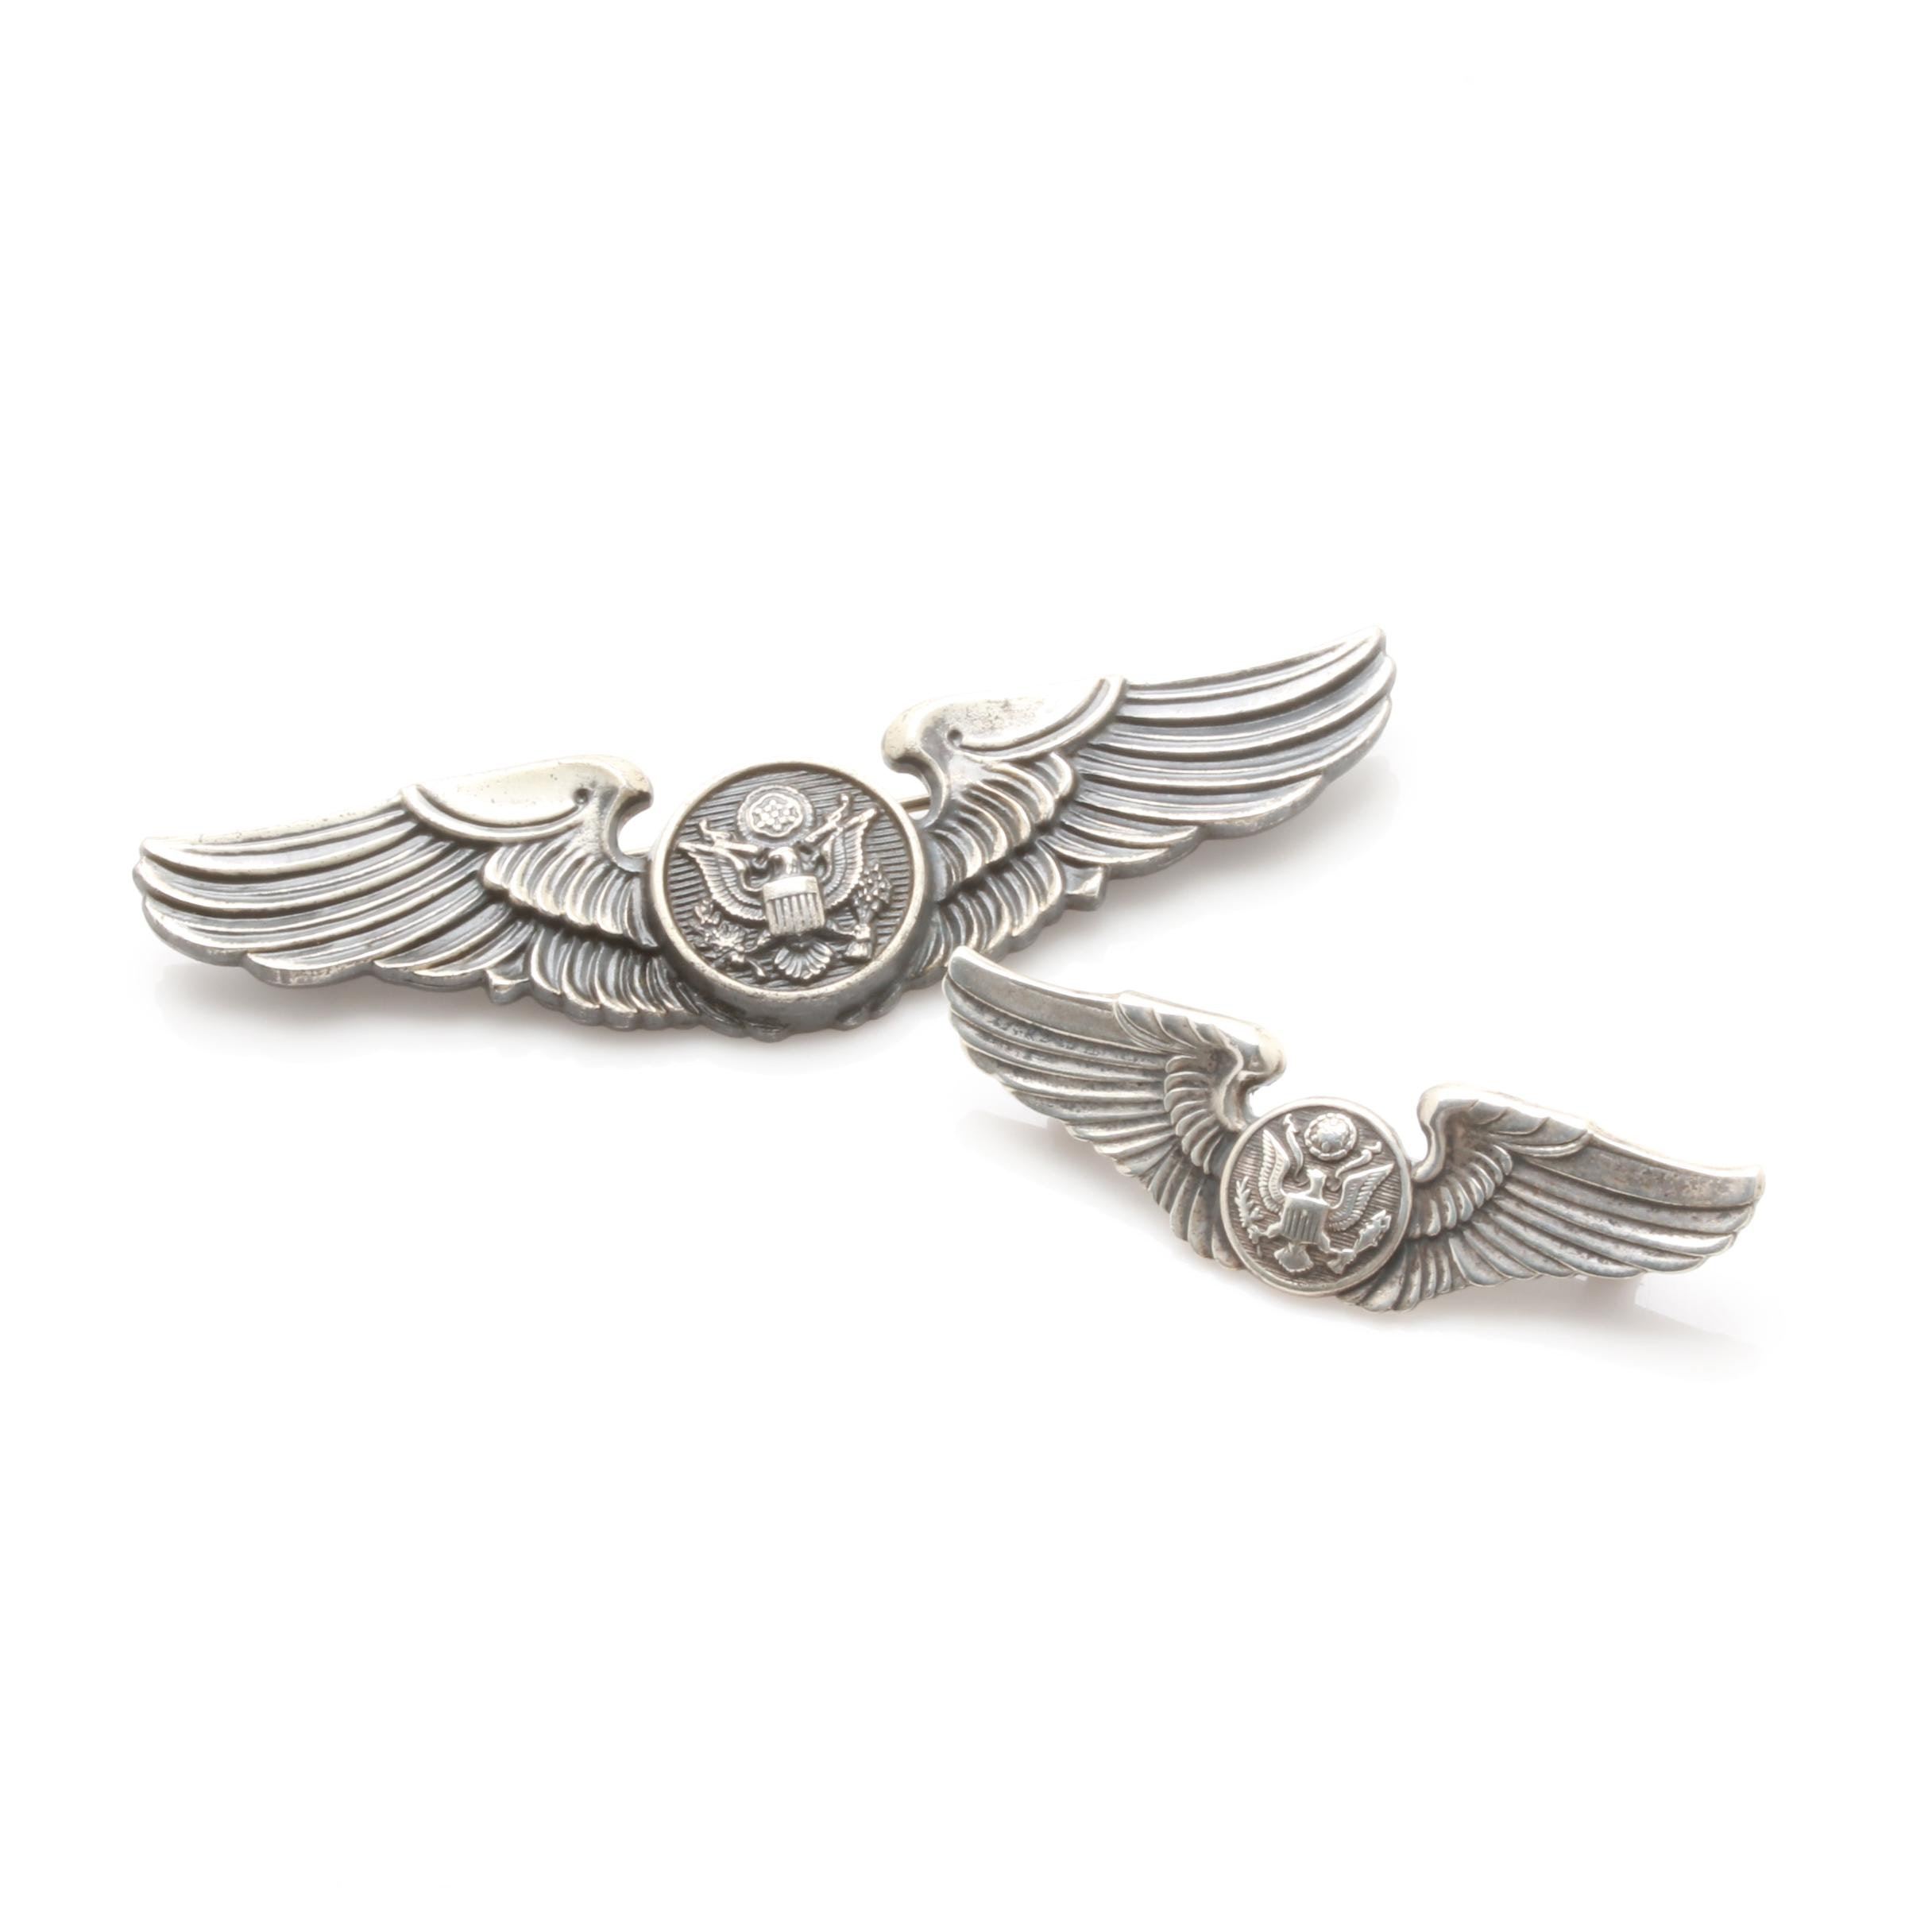 Selection of Sterling Silver Army Airforce Aircrew Wings Pins